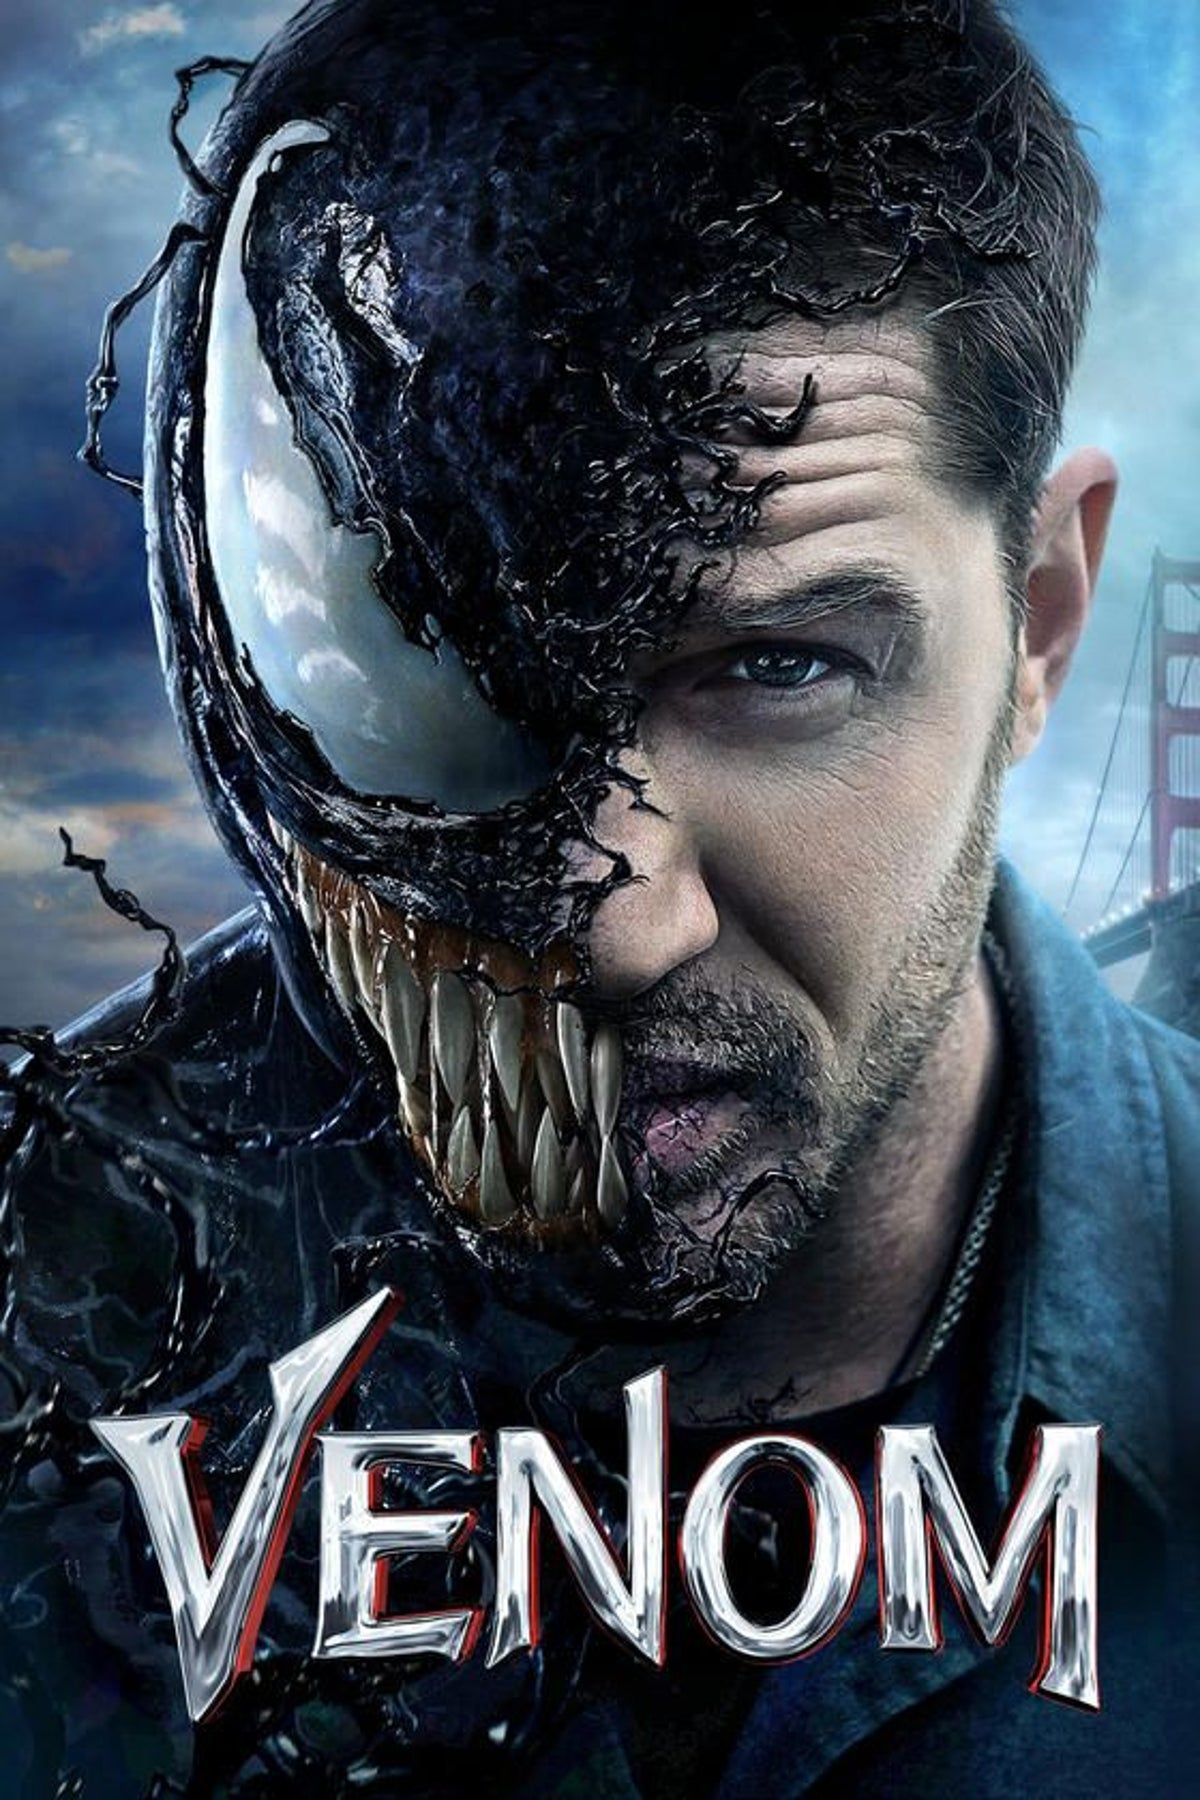 Venom dvd in 2020 Venom movie, Best sci fi movie, Movies